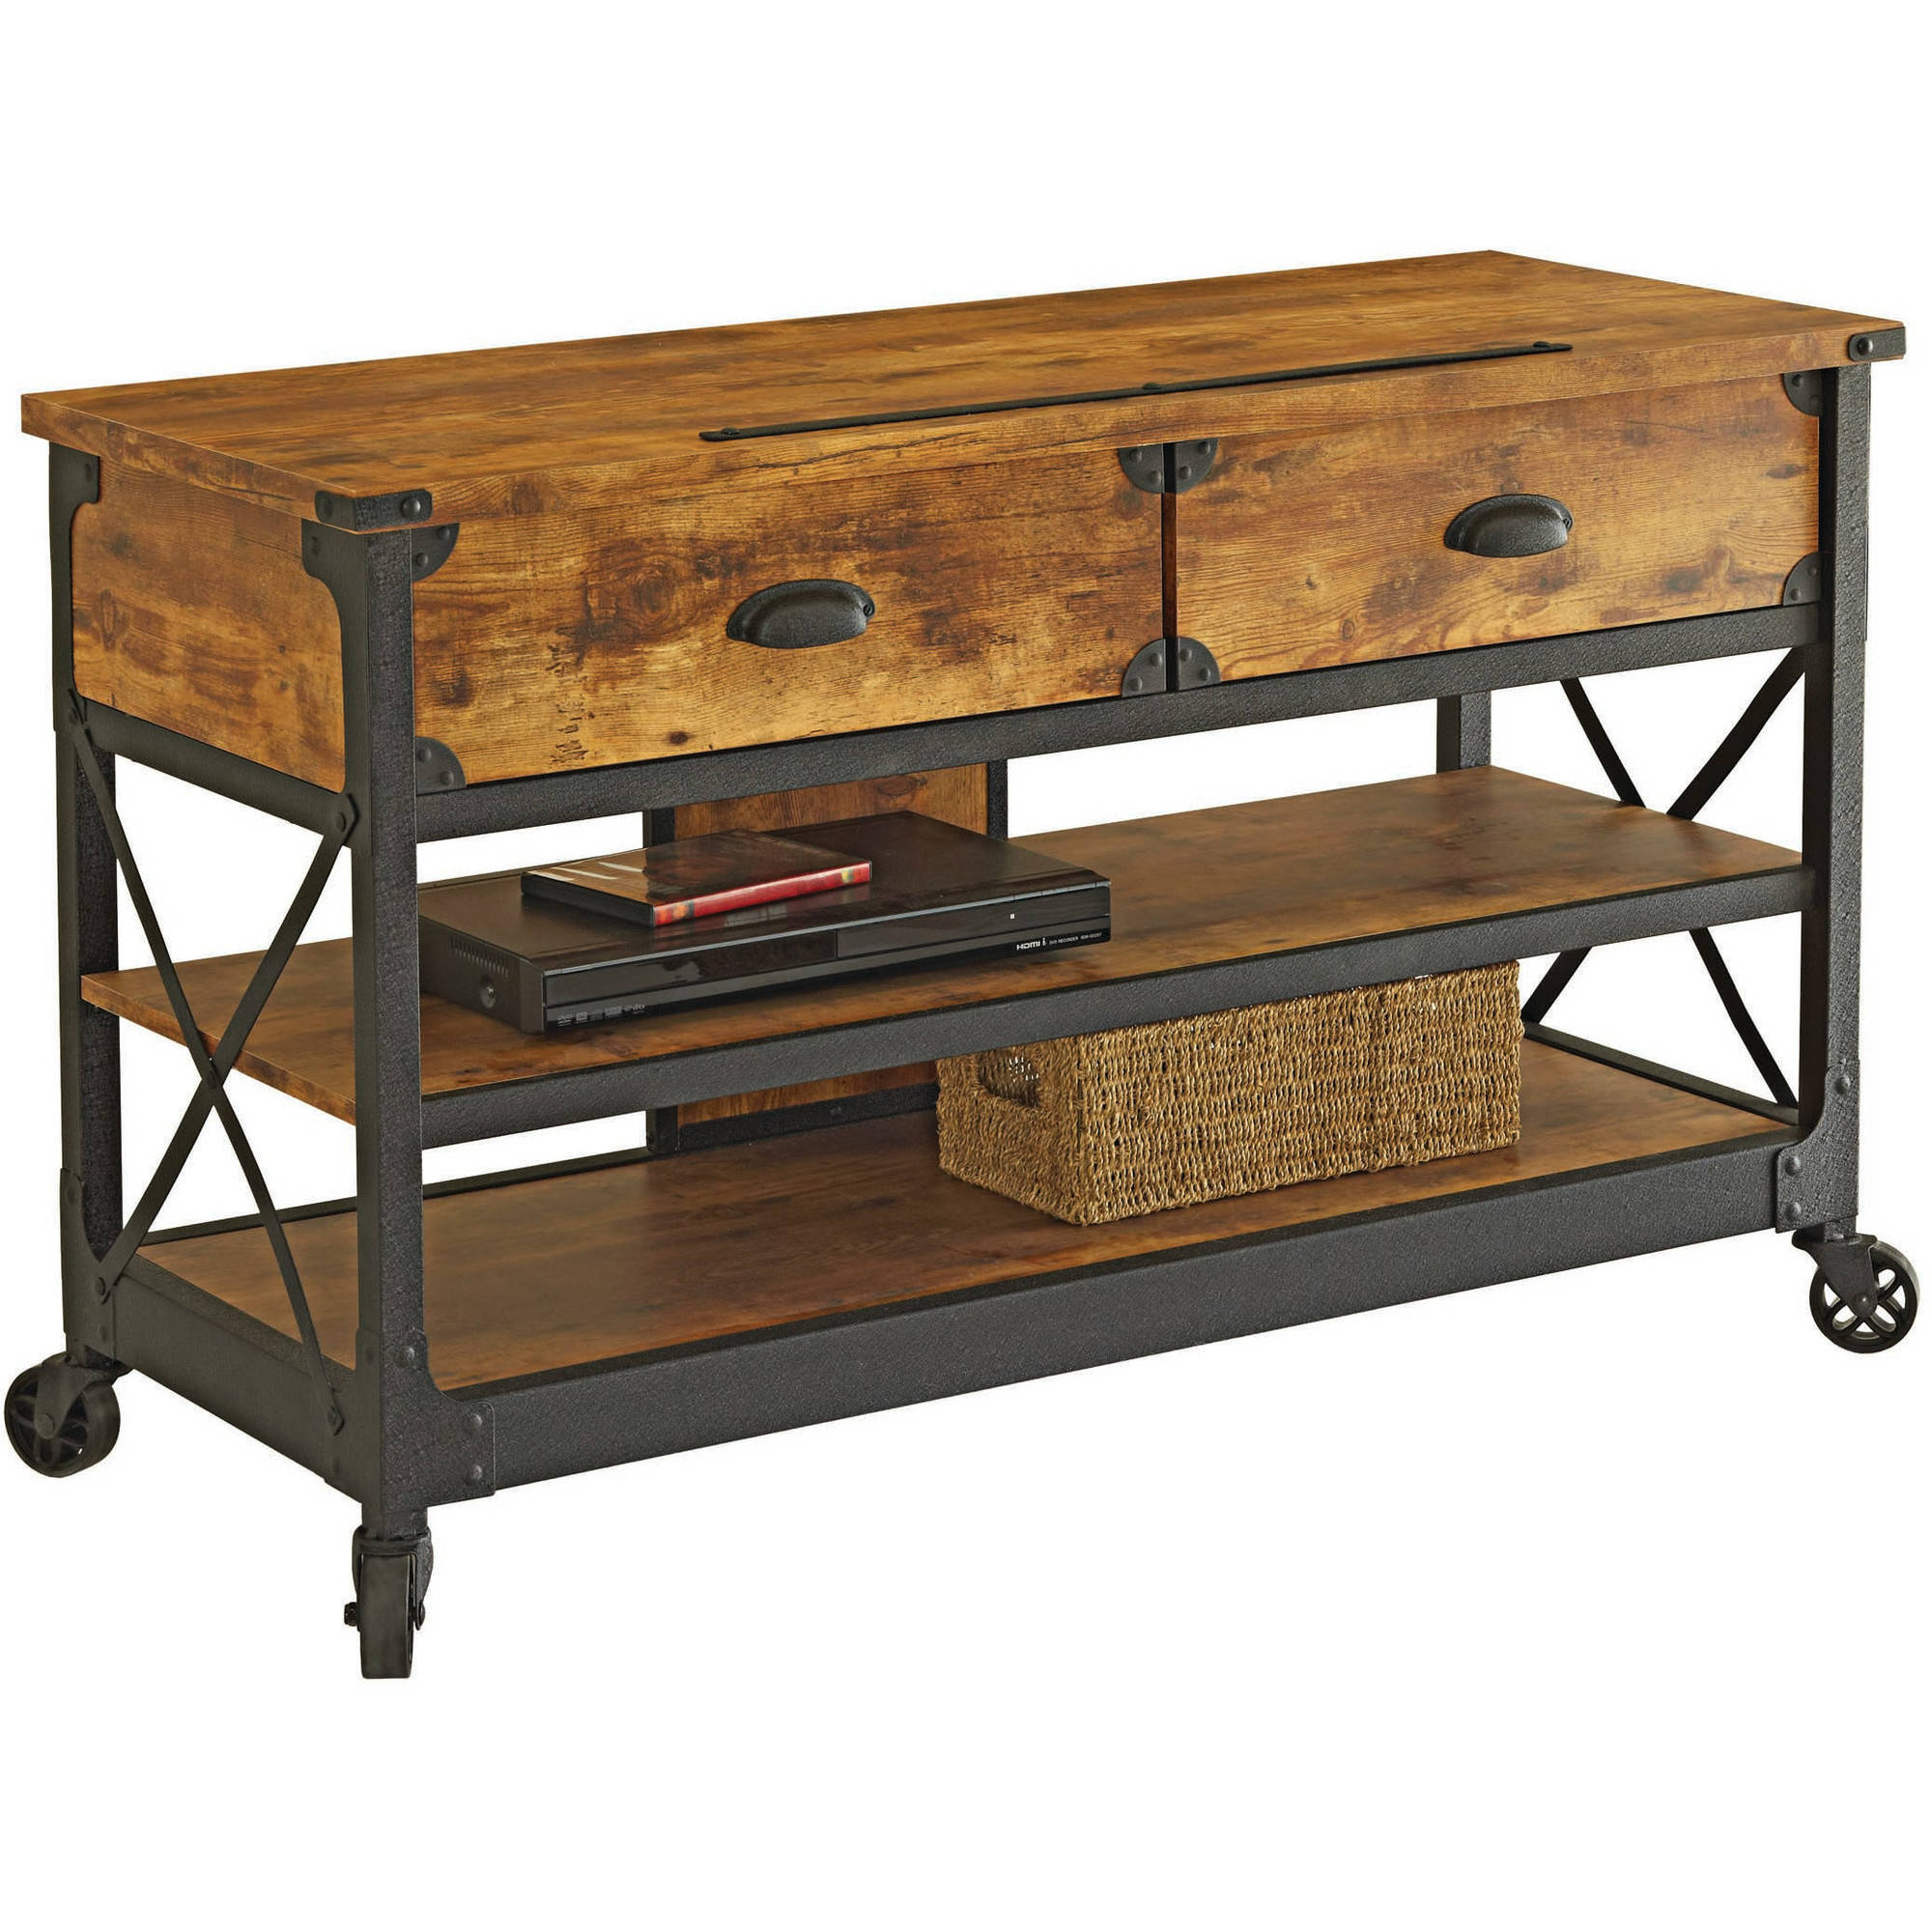 Better Homes and Gardens Rustic Country TV Stand for TVs up to 95 lbs, Antiqued Black/Pine Finish